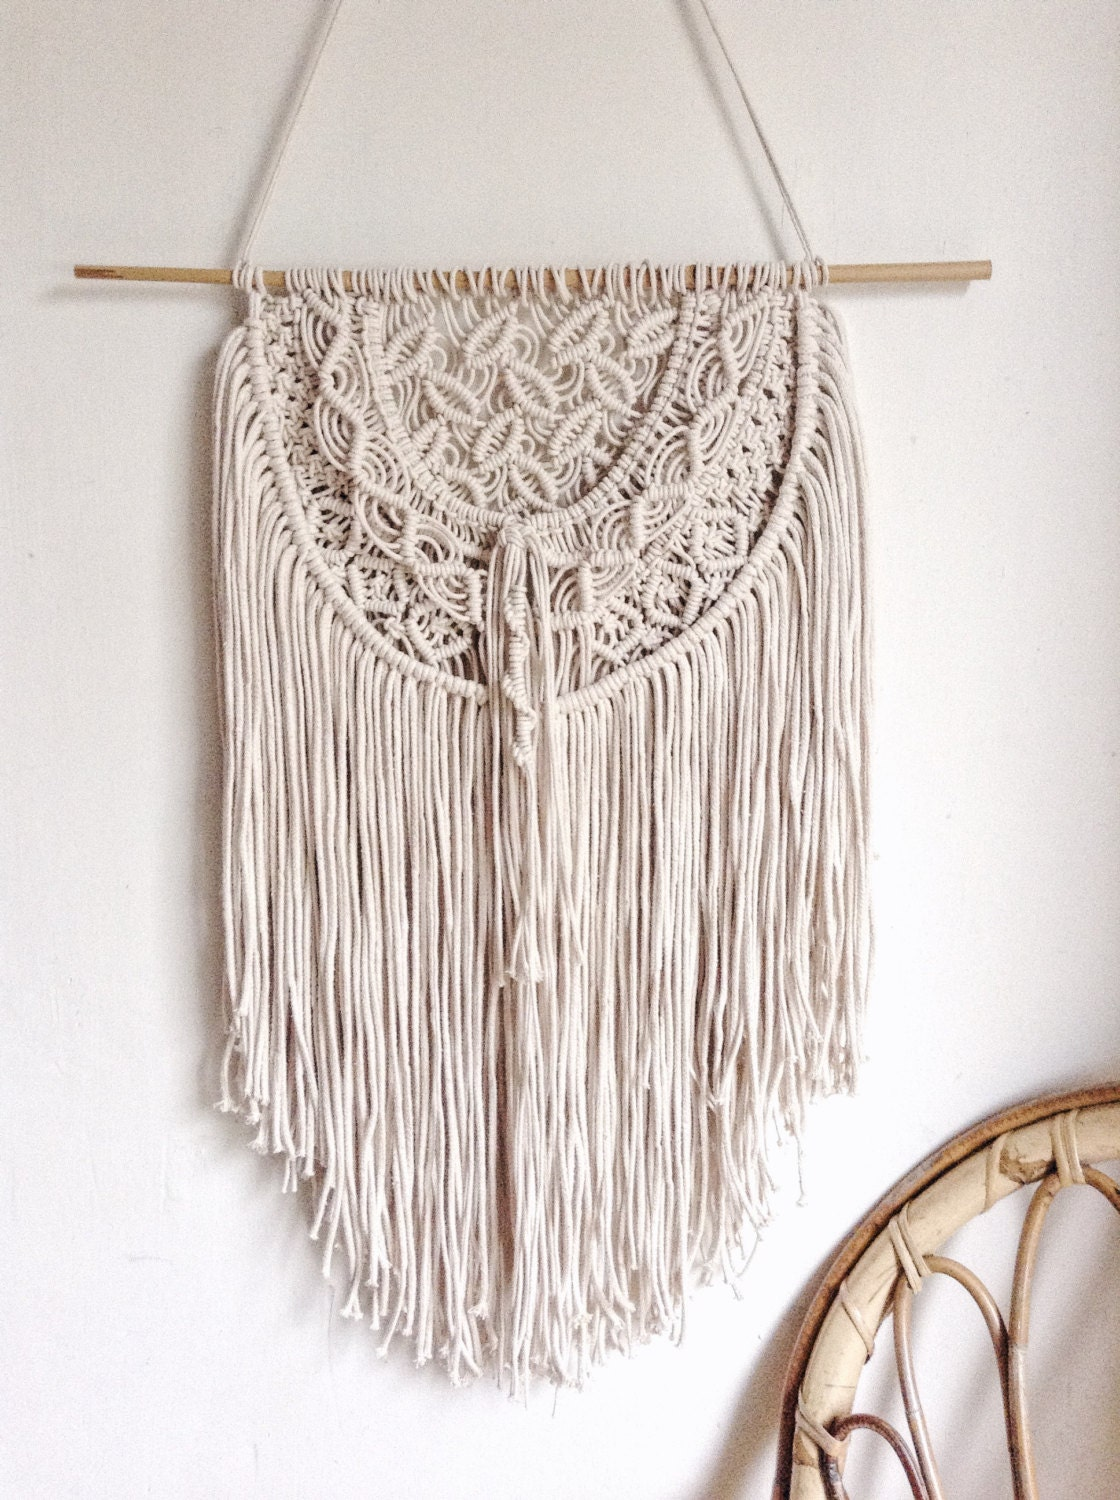 Macrame Wall Hanging Macrame Wall Decor Wedding Decor